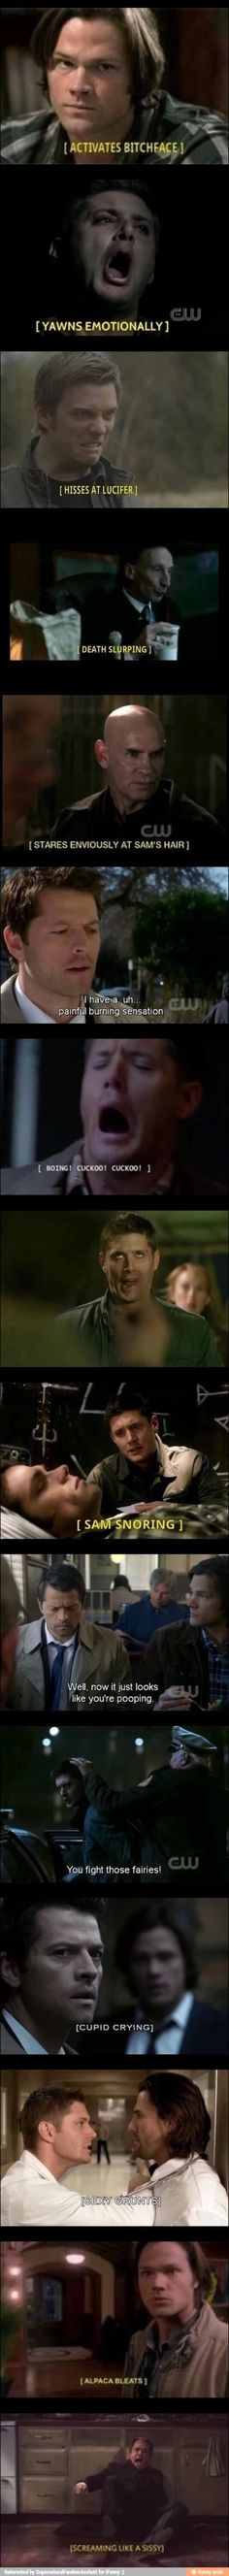 The glorious sounds of our fandom. XD #Supernatural Symphony